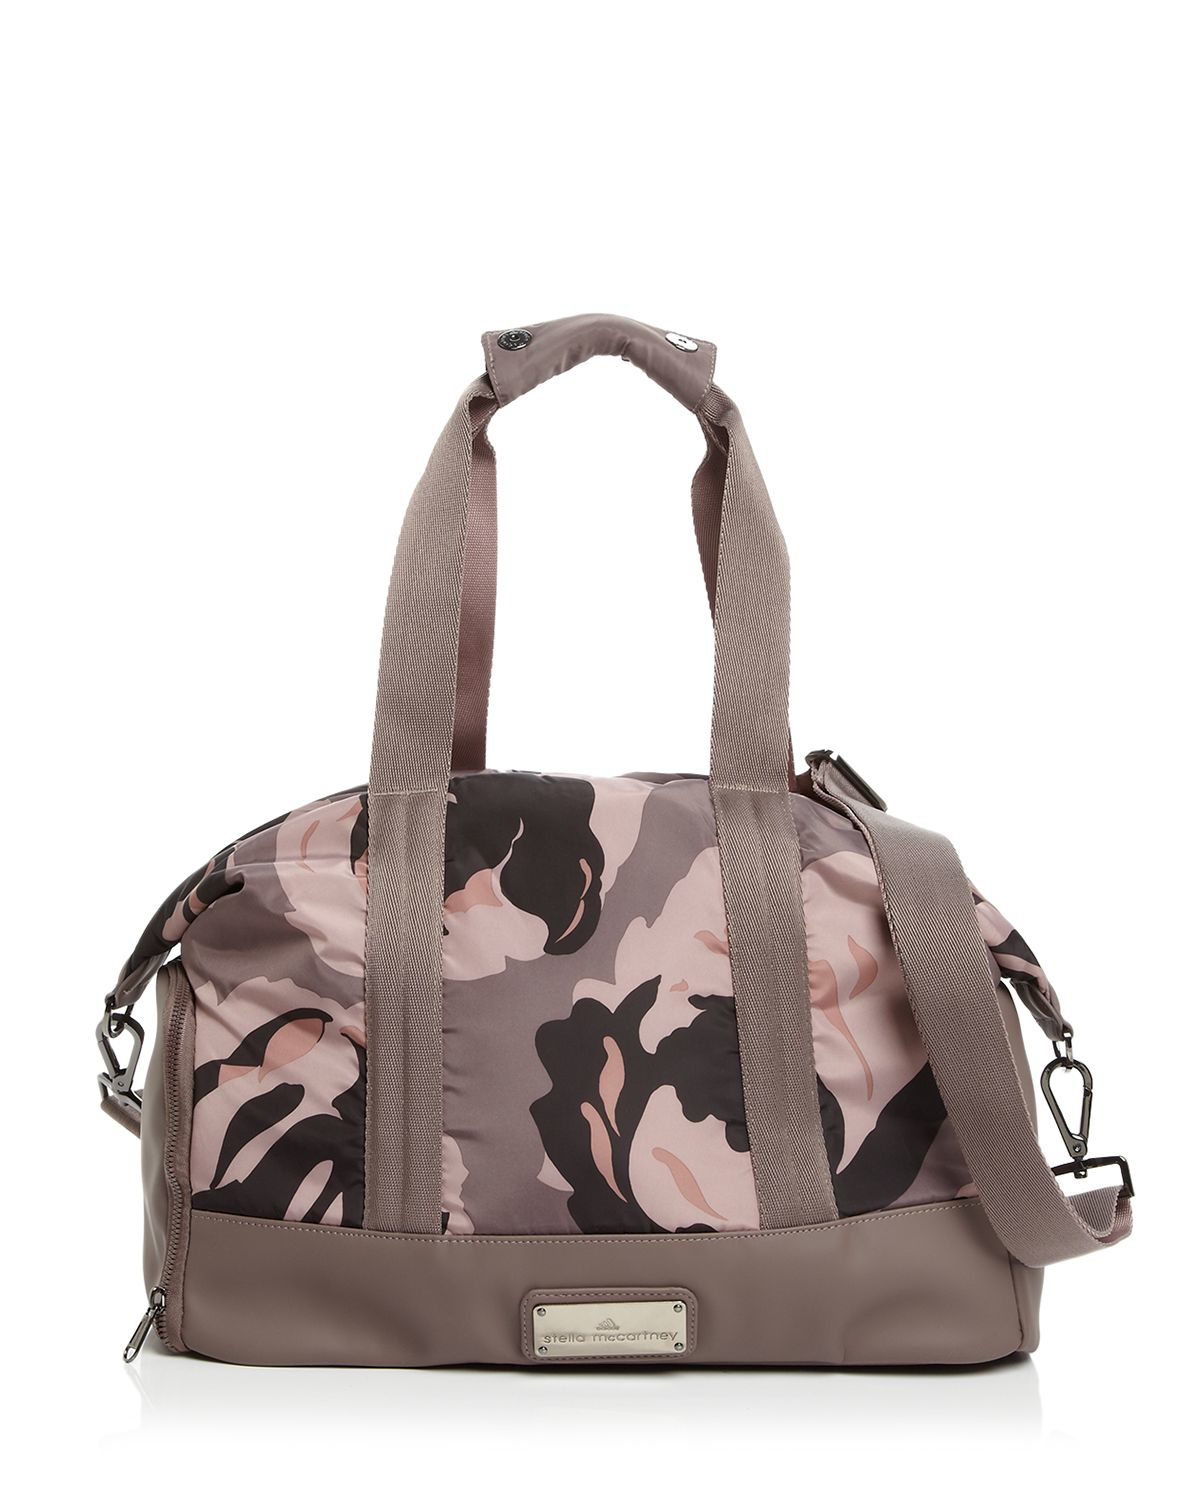 bb89ae1b9f Lyst - adidas By Stella McCartney Tote - Floral Camo Small Gym Bag ...